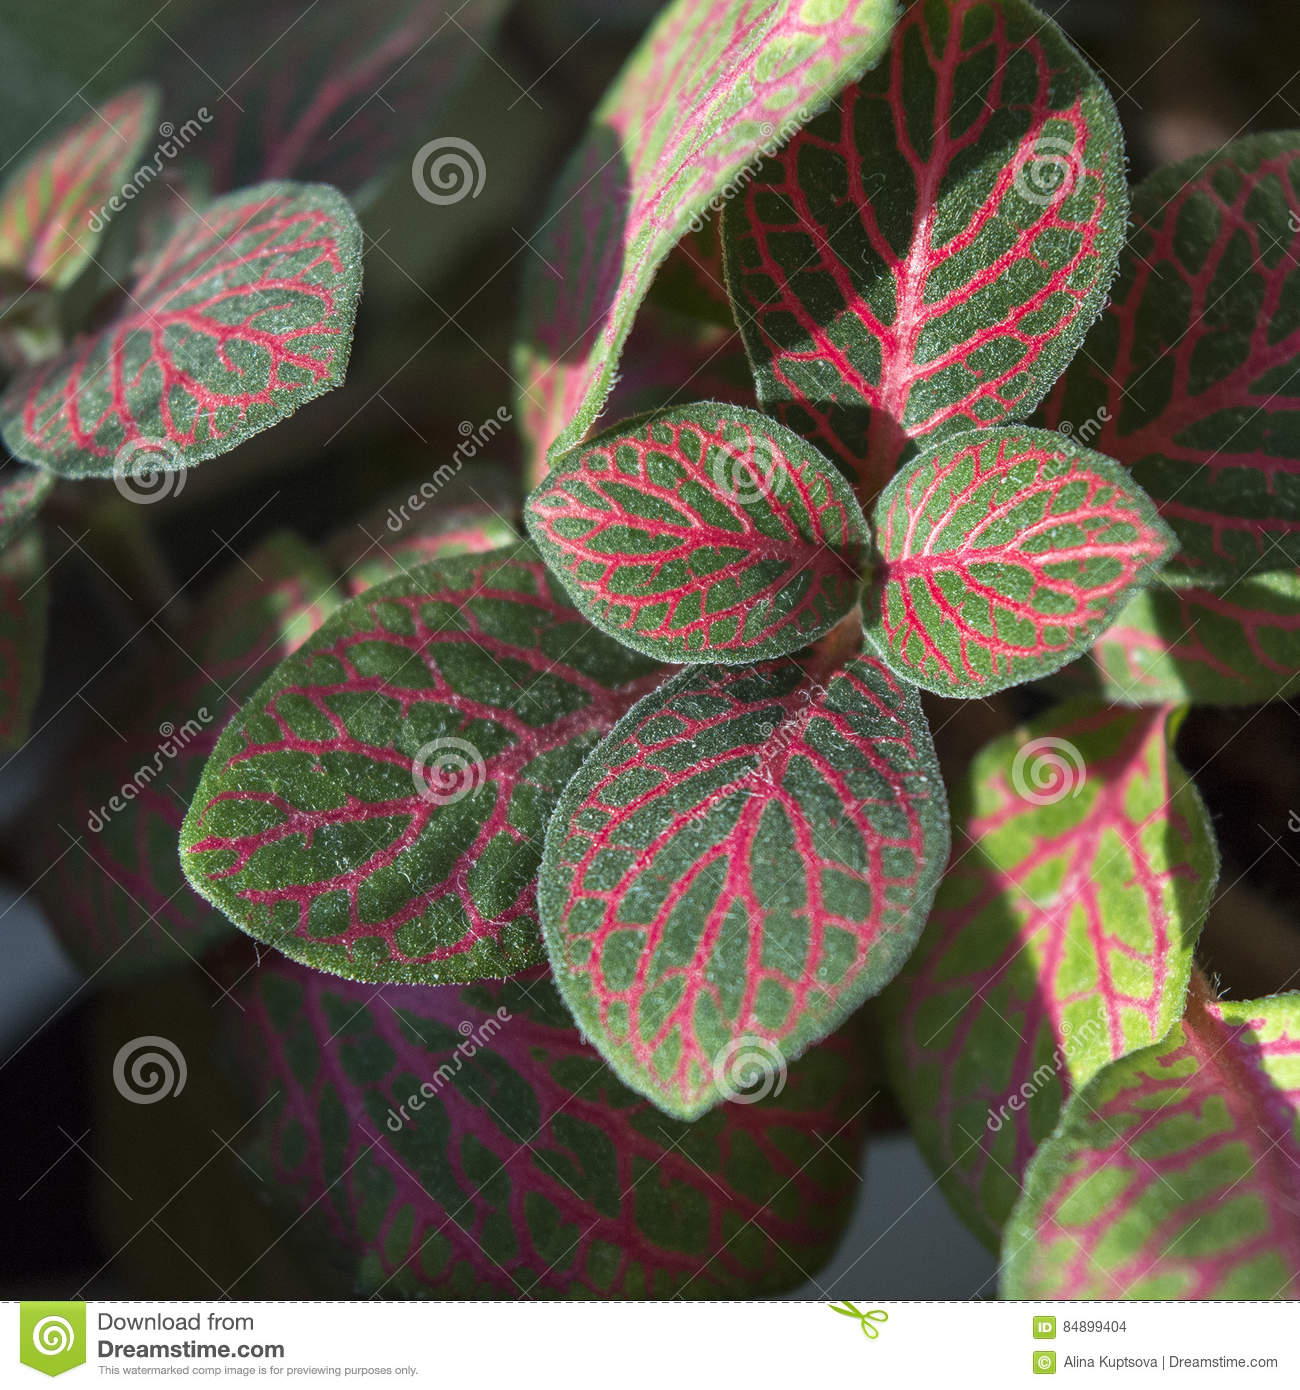 Bright onia Foliage With Red Veins Stock Photo - Image of ... on red and green ground cover, red and green ornamental grass, red and green leaf plant,